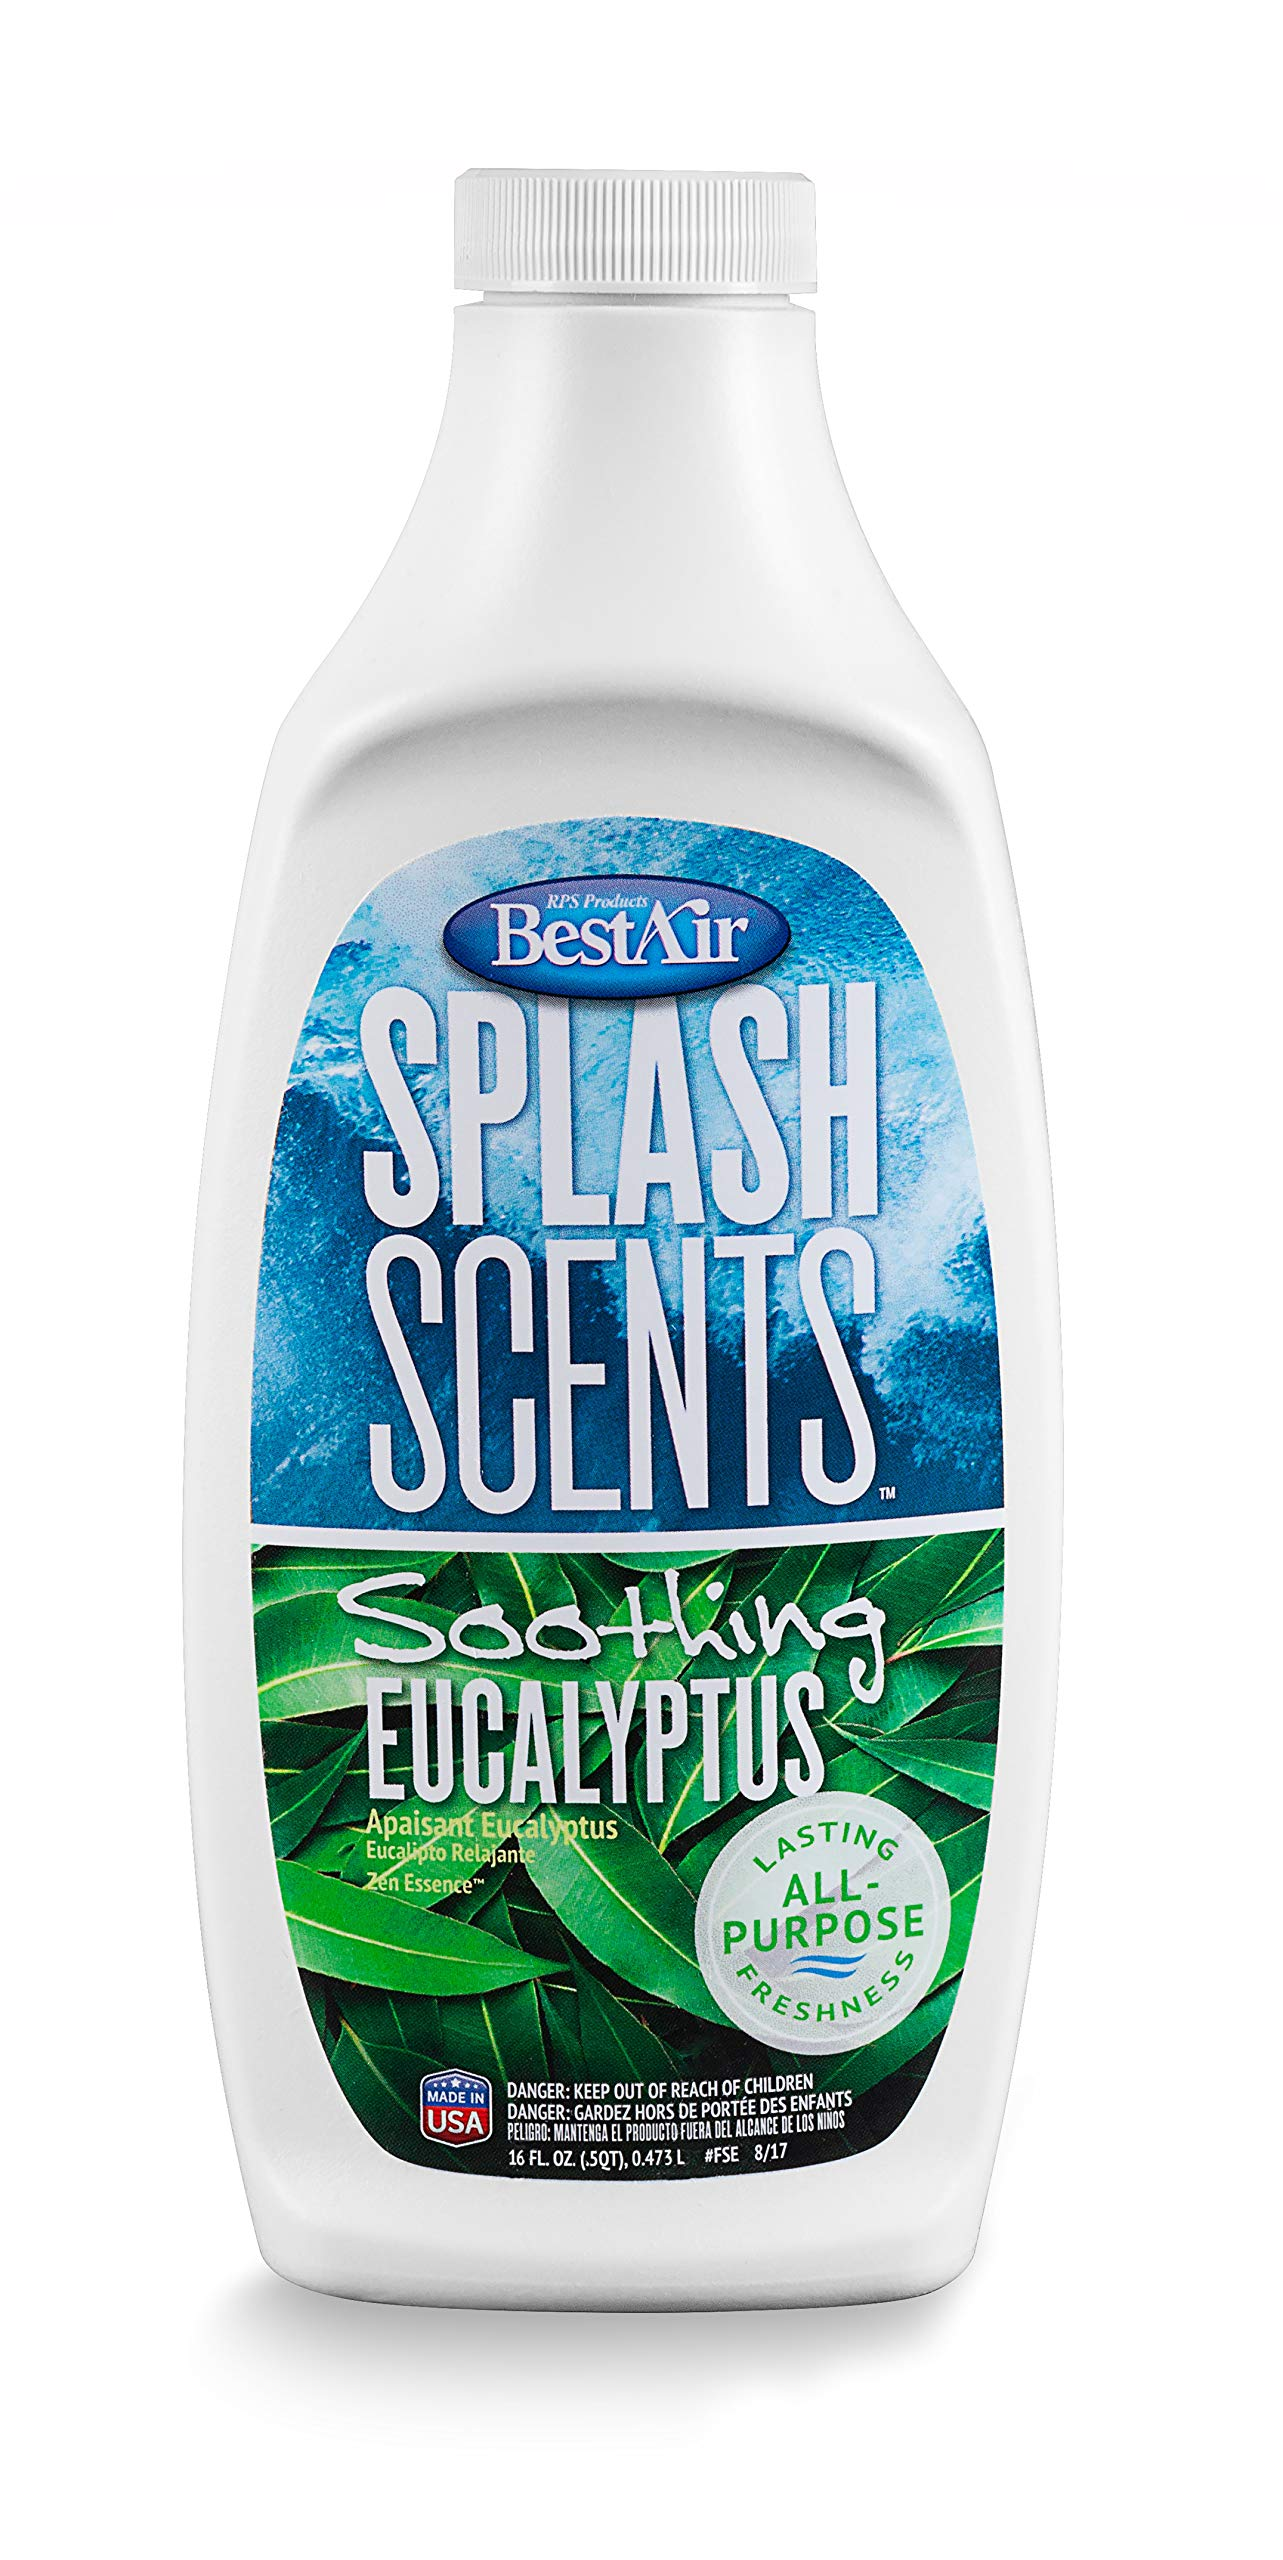 BestAir FSE-PDQ-6 Splash Scents Humidifier Scent & Water Treatment, Soothing Eucalyptus, 16 fl oz, Single Pack by BestAir